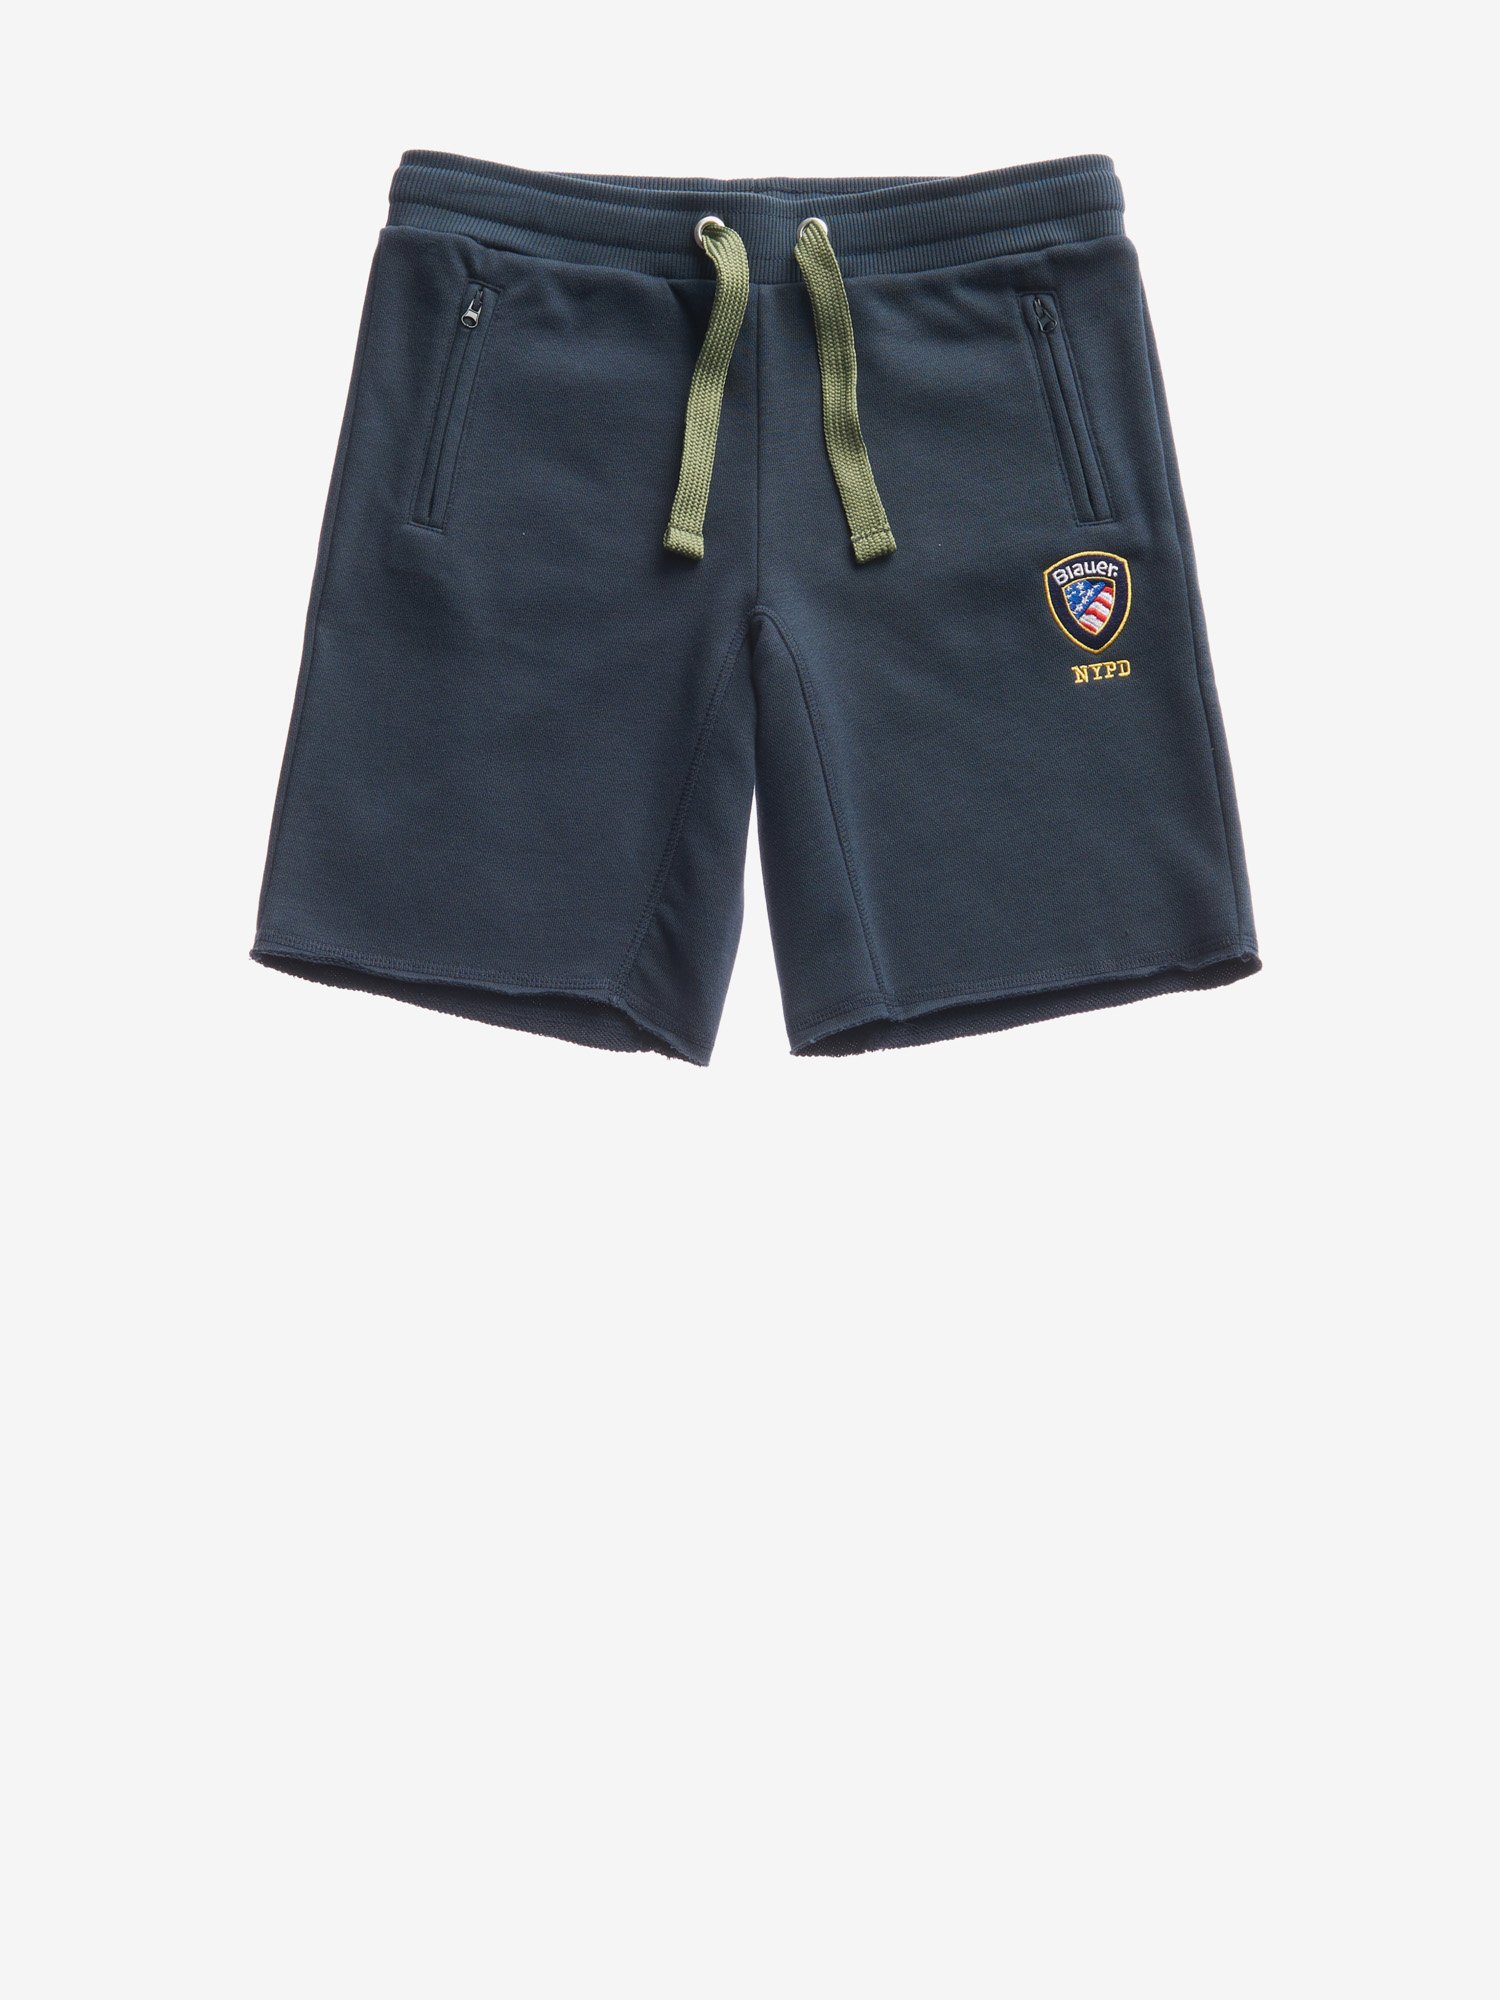 JUNIOR SHORT FRAYED-EDGE SWEATPANTS - Blauer